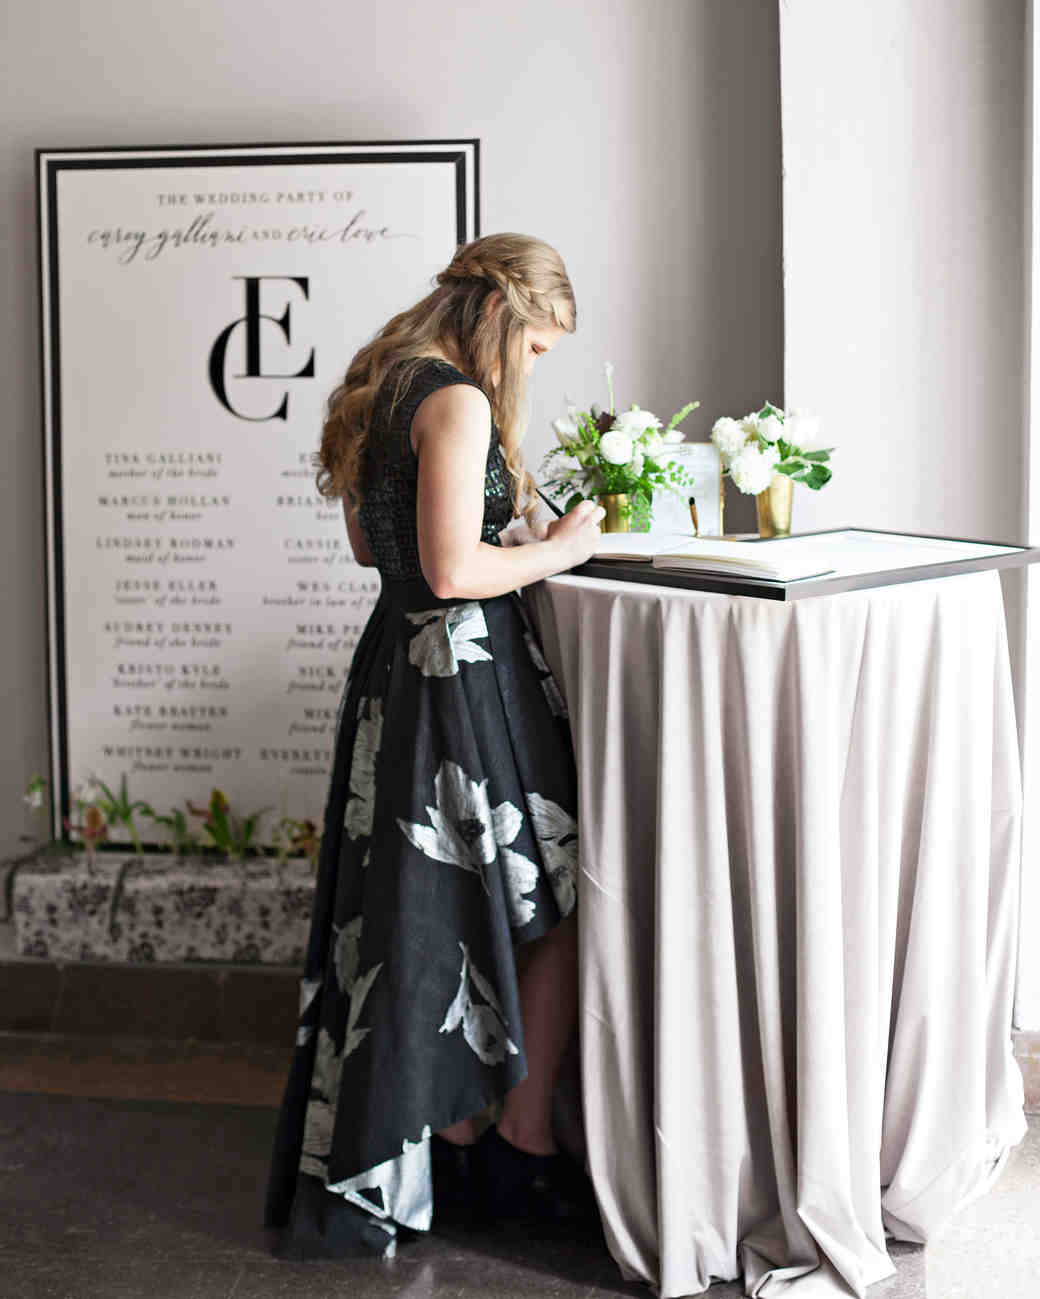 Novel Ideas For Wedding Reception: 46 Guest Books From Real Weddings